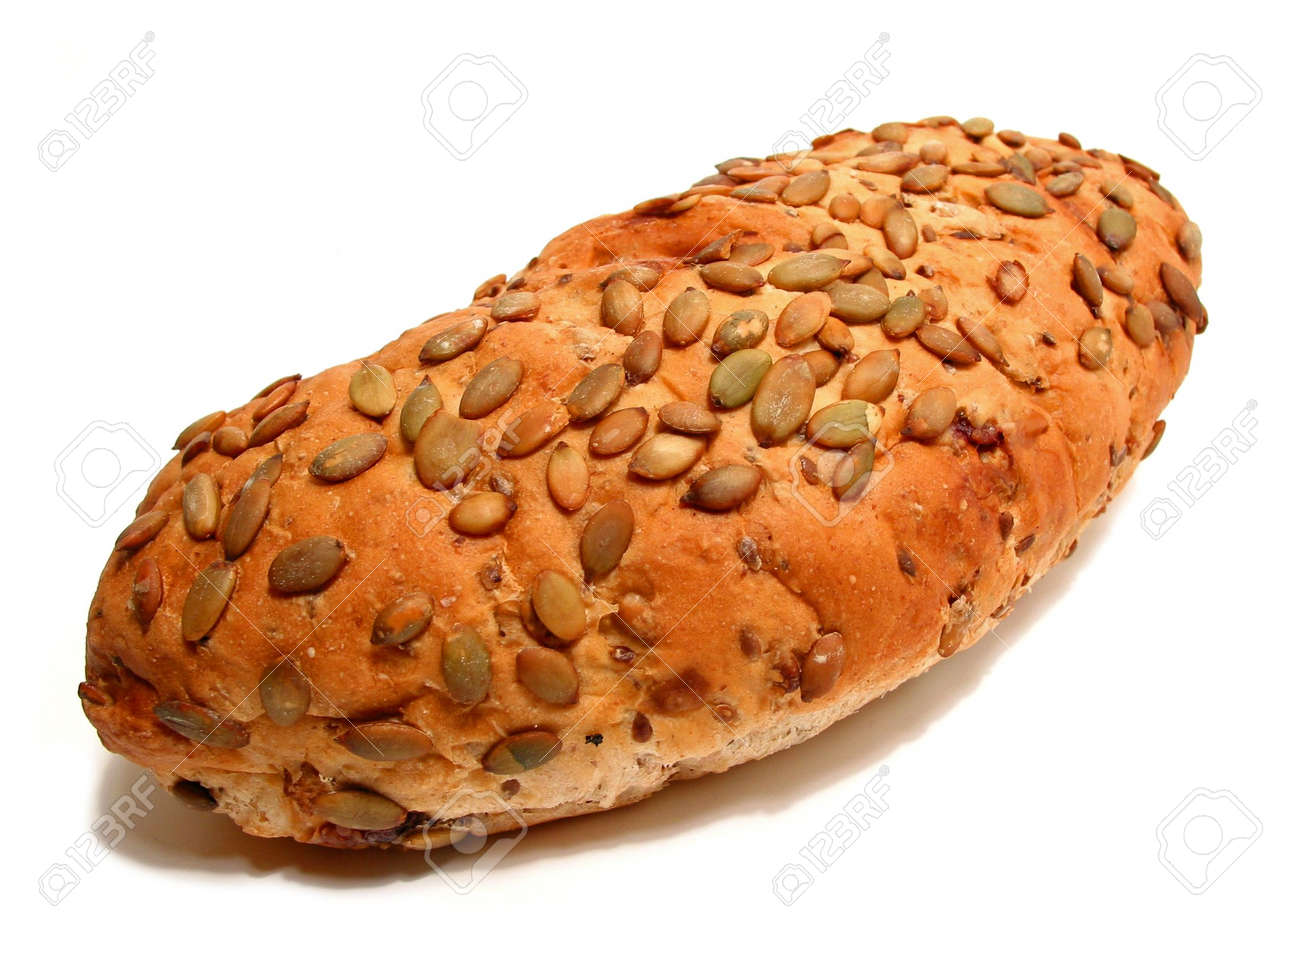 Loaf Of Artisan Pumpkin Seed And Cranberry Bread On White Background Stock Photo